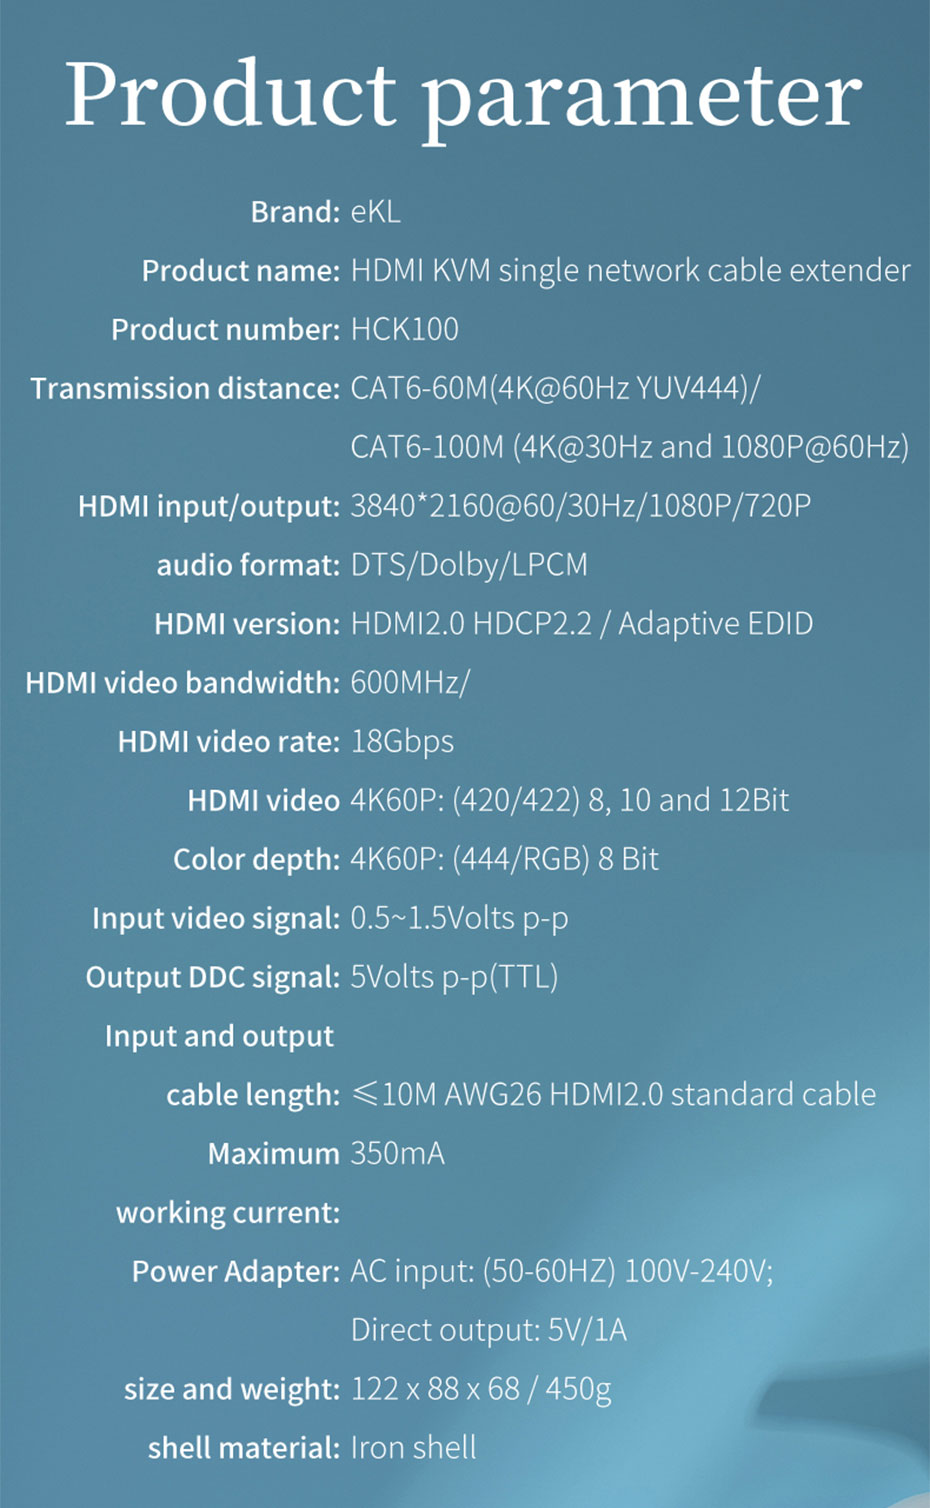 HDMI KVM extender 4K 100 meters HCK100 specifications